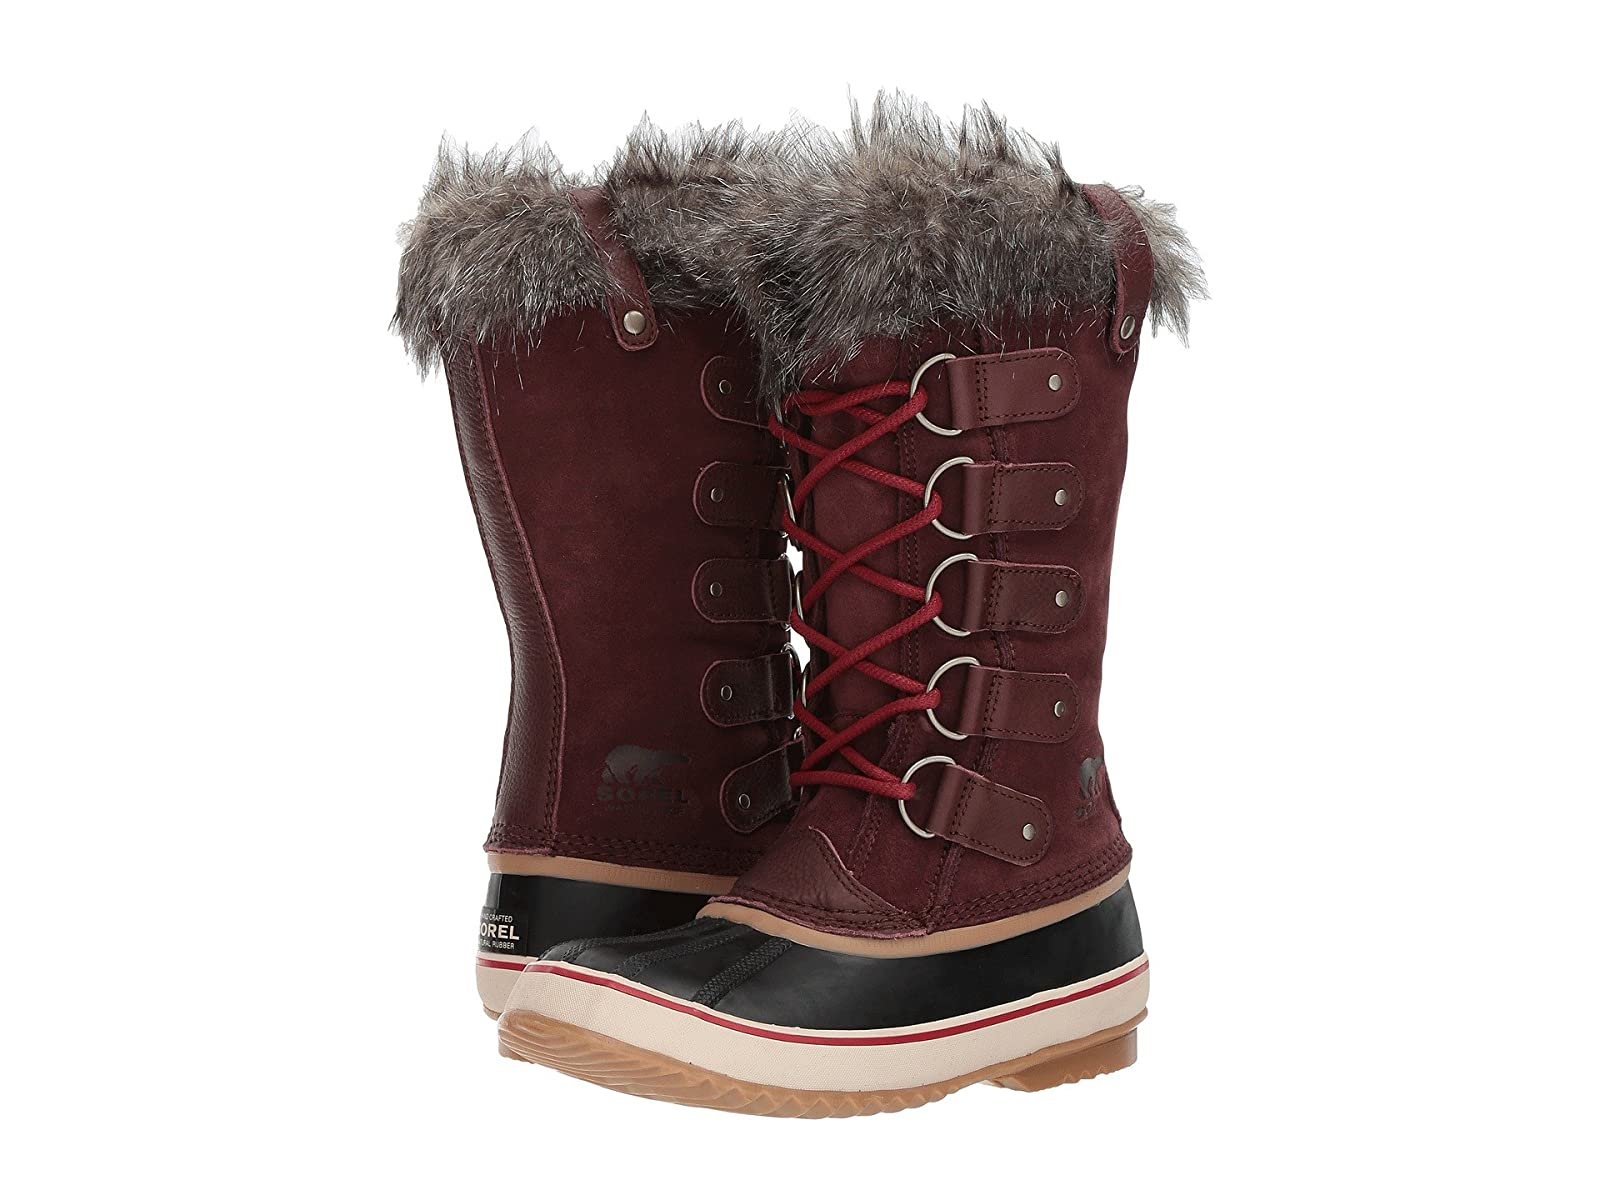 SOREL Joan of ArcticCheap and distinctive eye-catching shoes